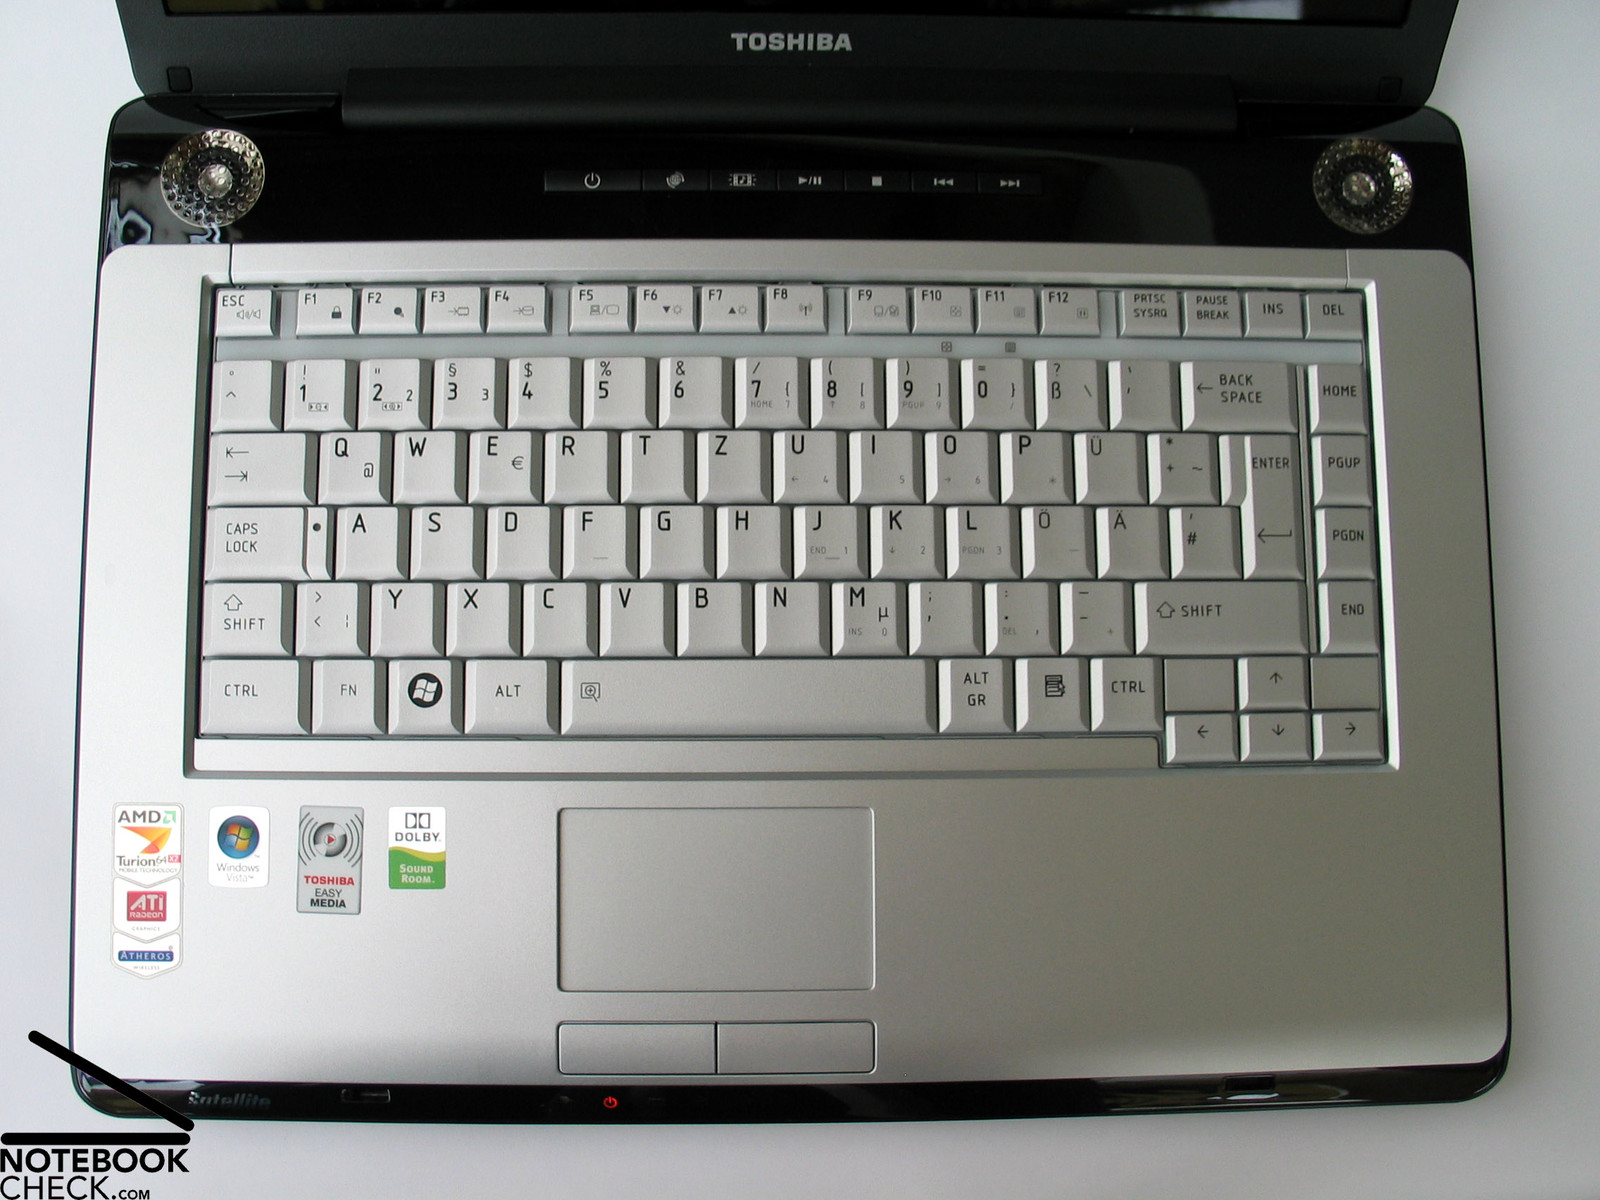 Toshiba Satellite A210 Modem Windows 7